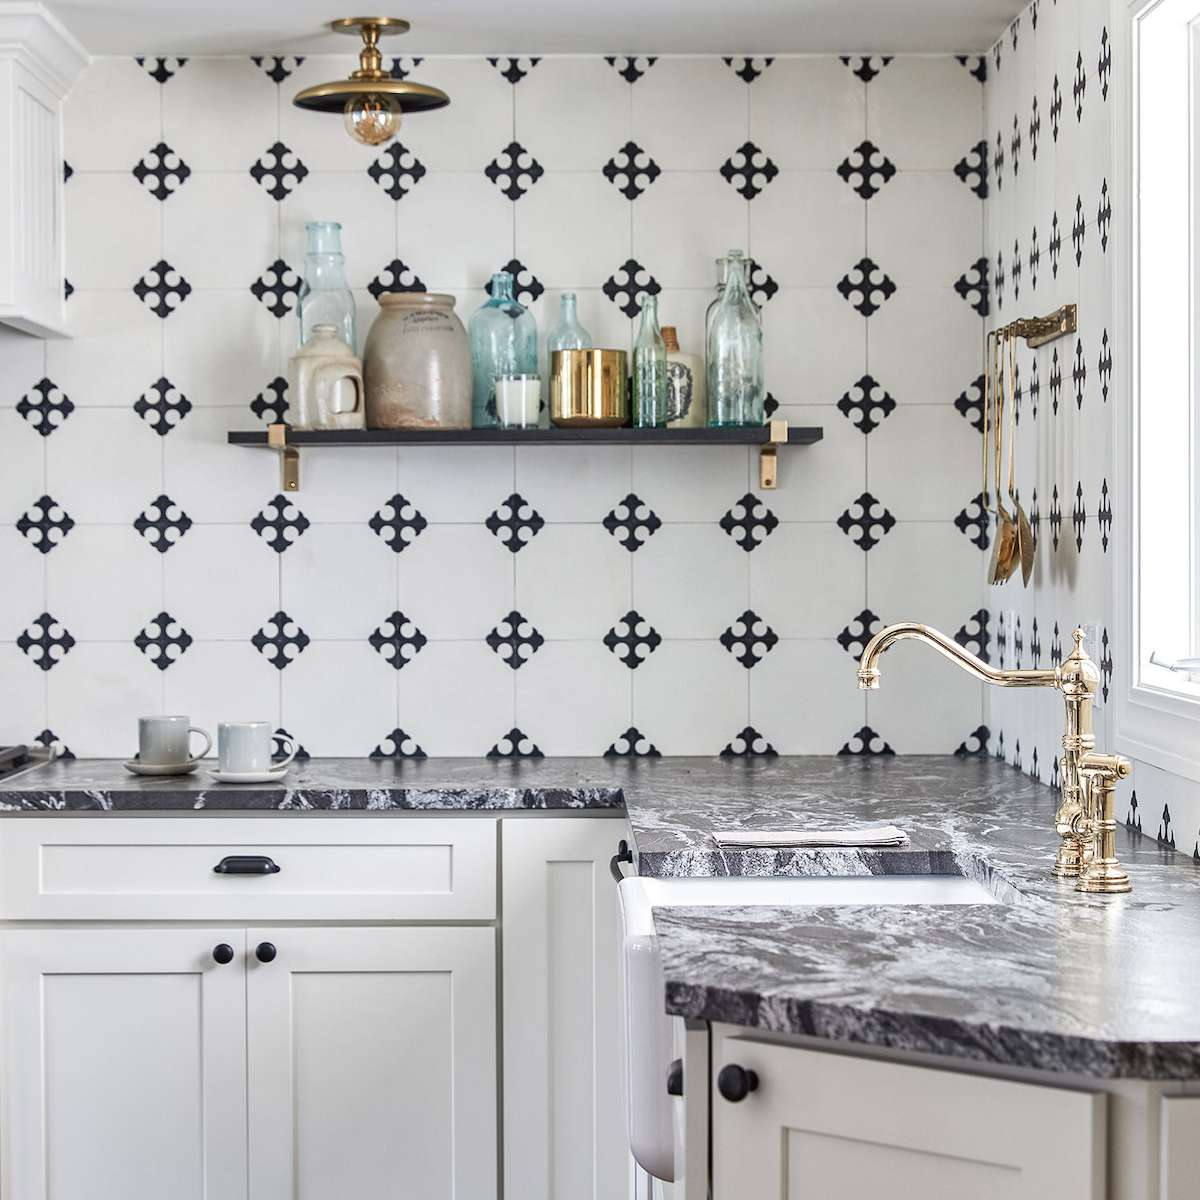 A kitchen with a bold tiled backsplash and striking marble countertops